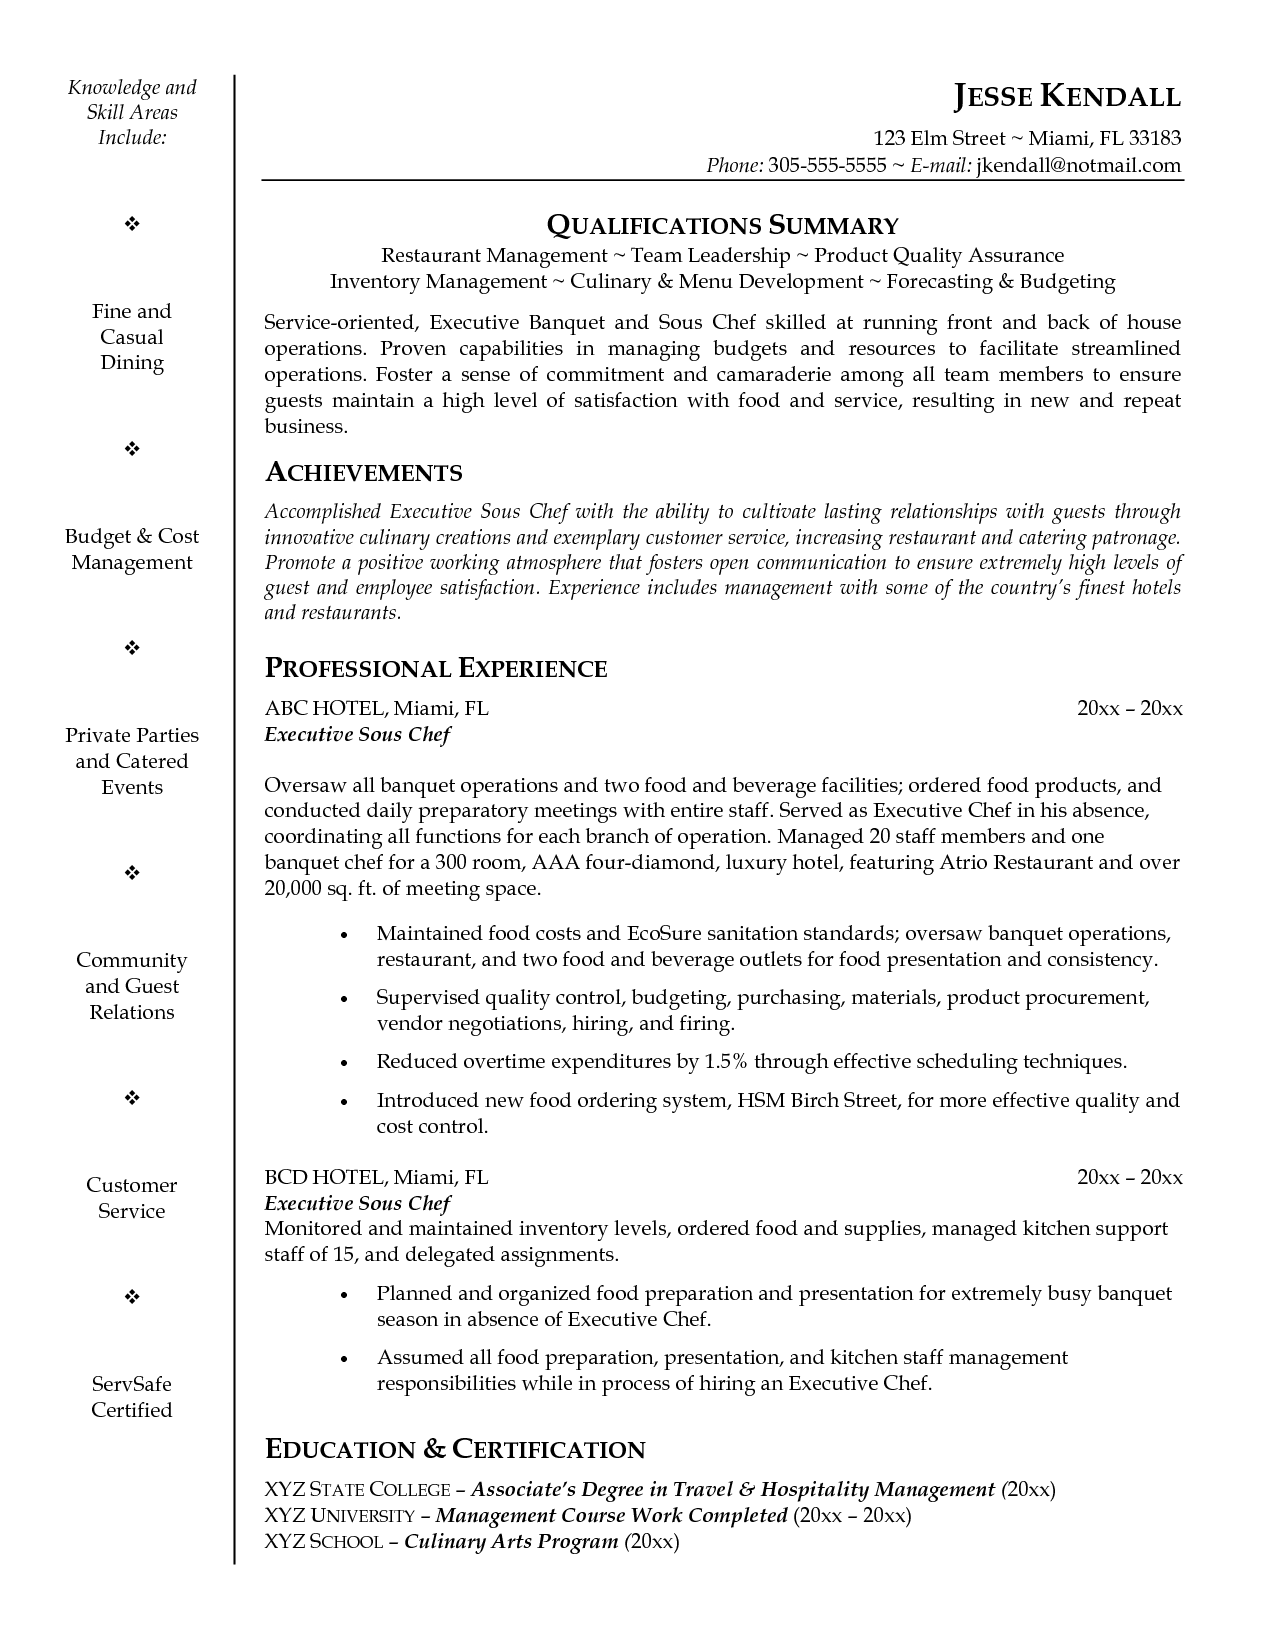 resume objective statement examples non profit resume objective statement samples meganwest non profit resume objective statement - Non Profit Resume Samples